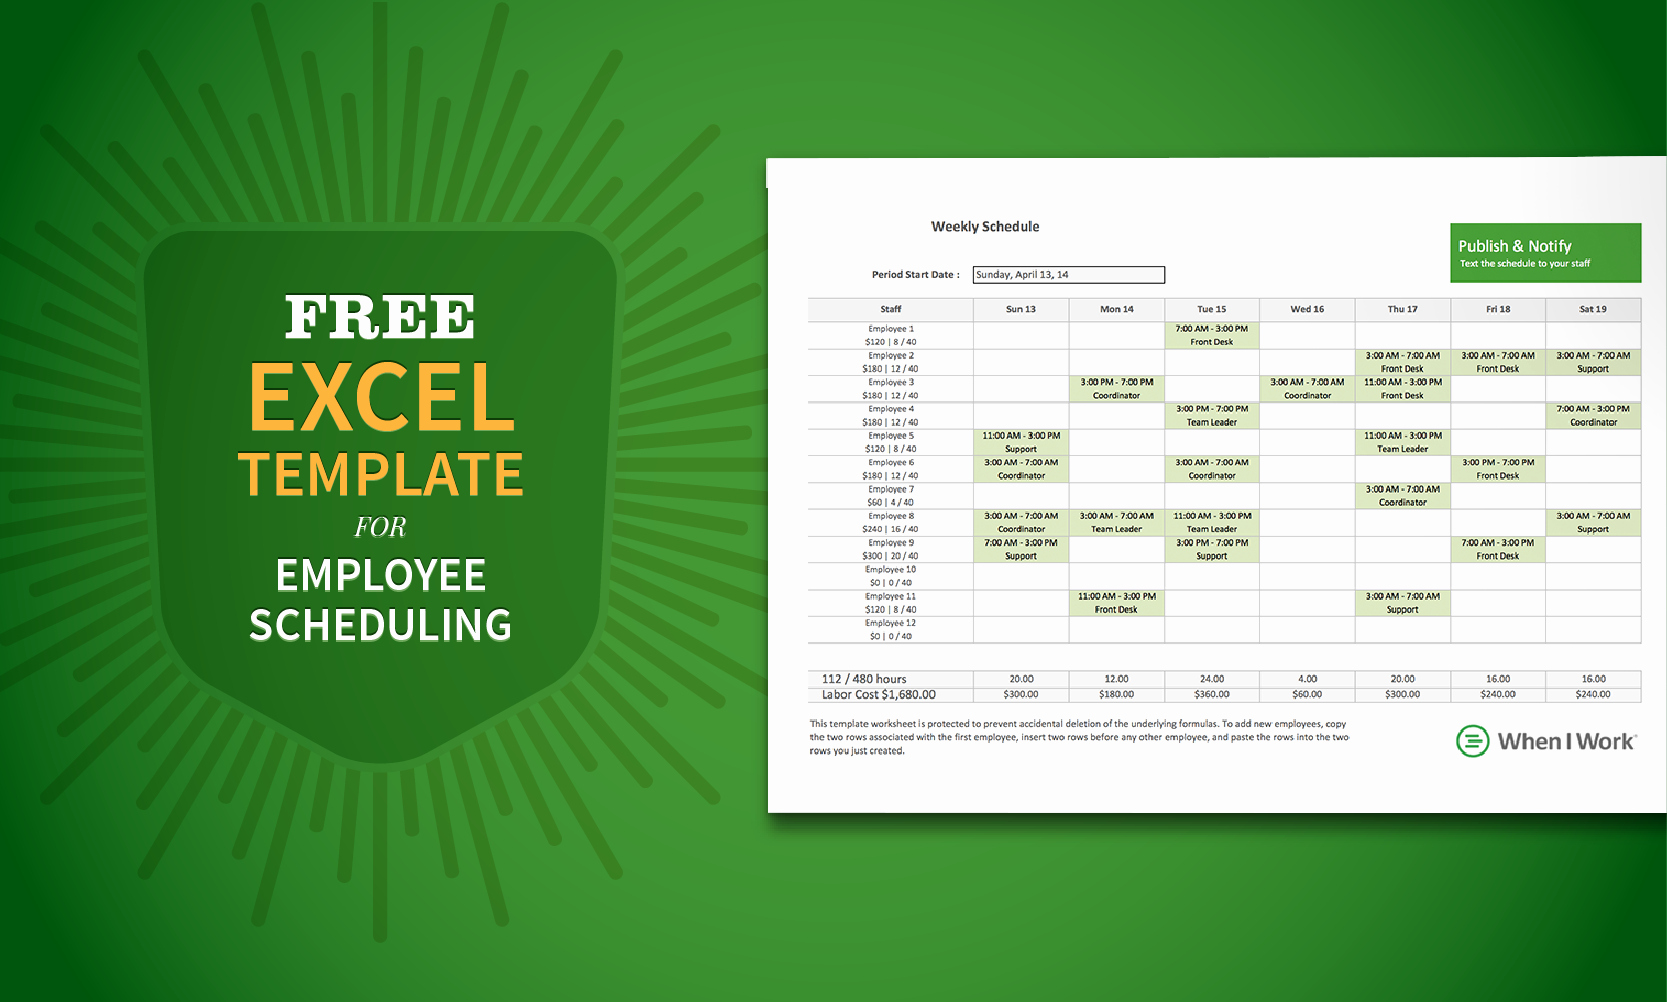 Free Staff Schedule Template Elegant Free Excel Template for Employee Scheduling